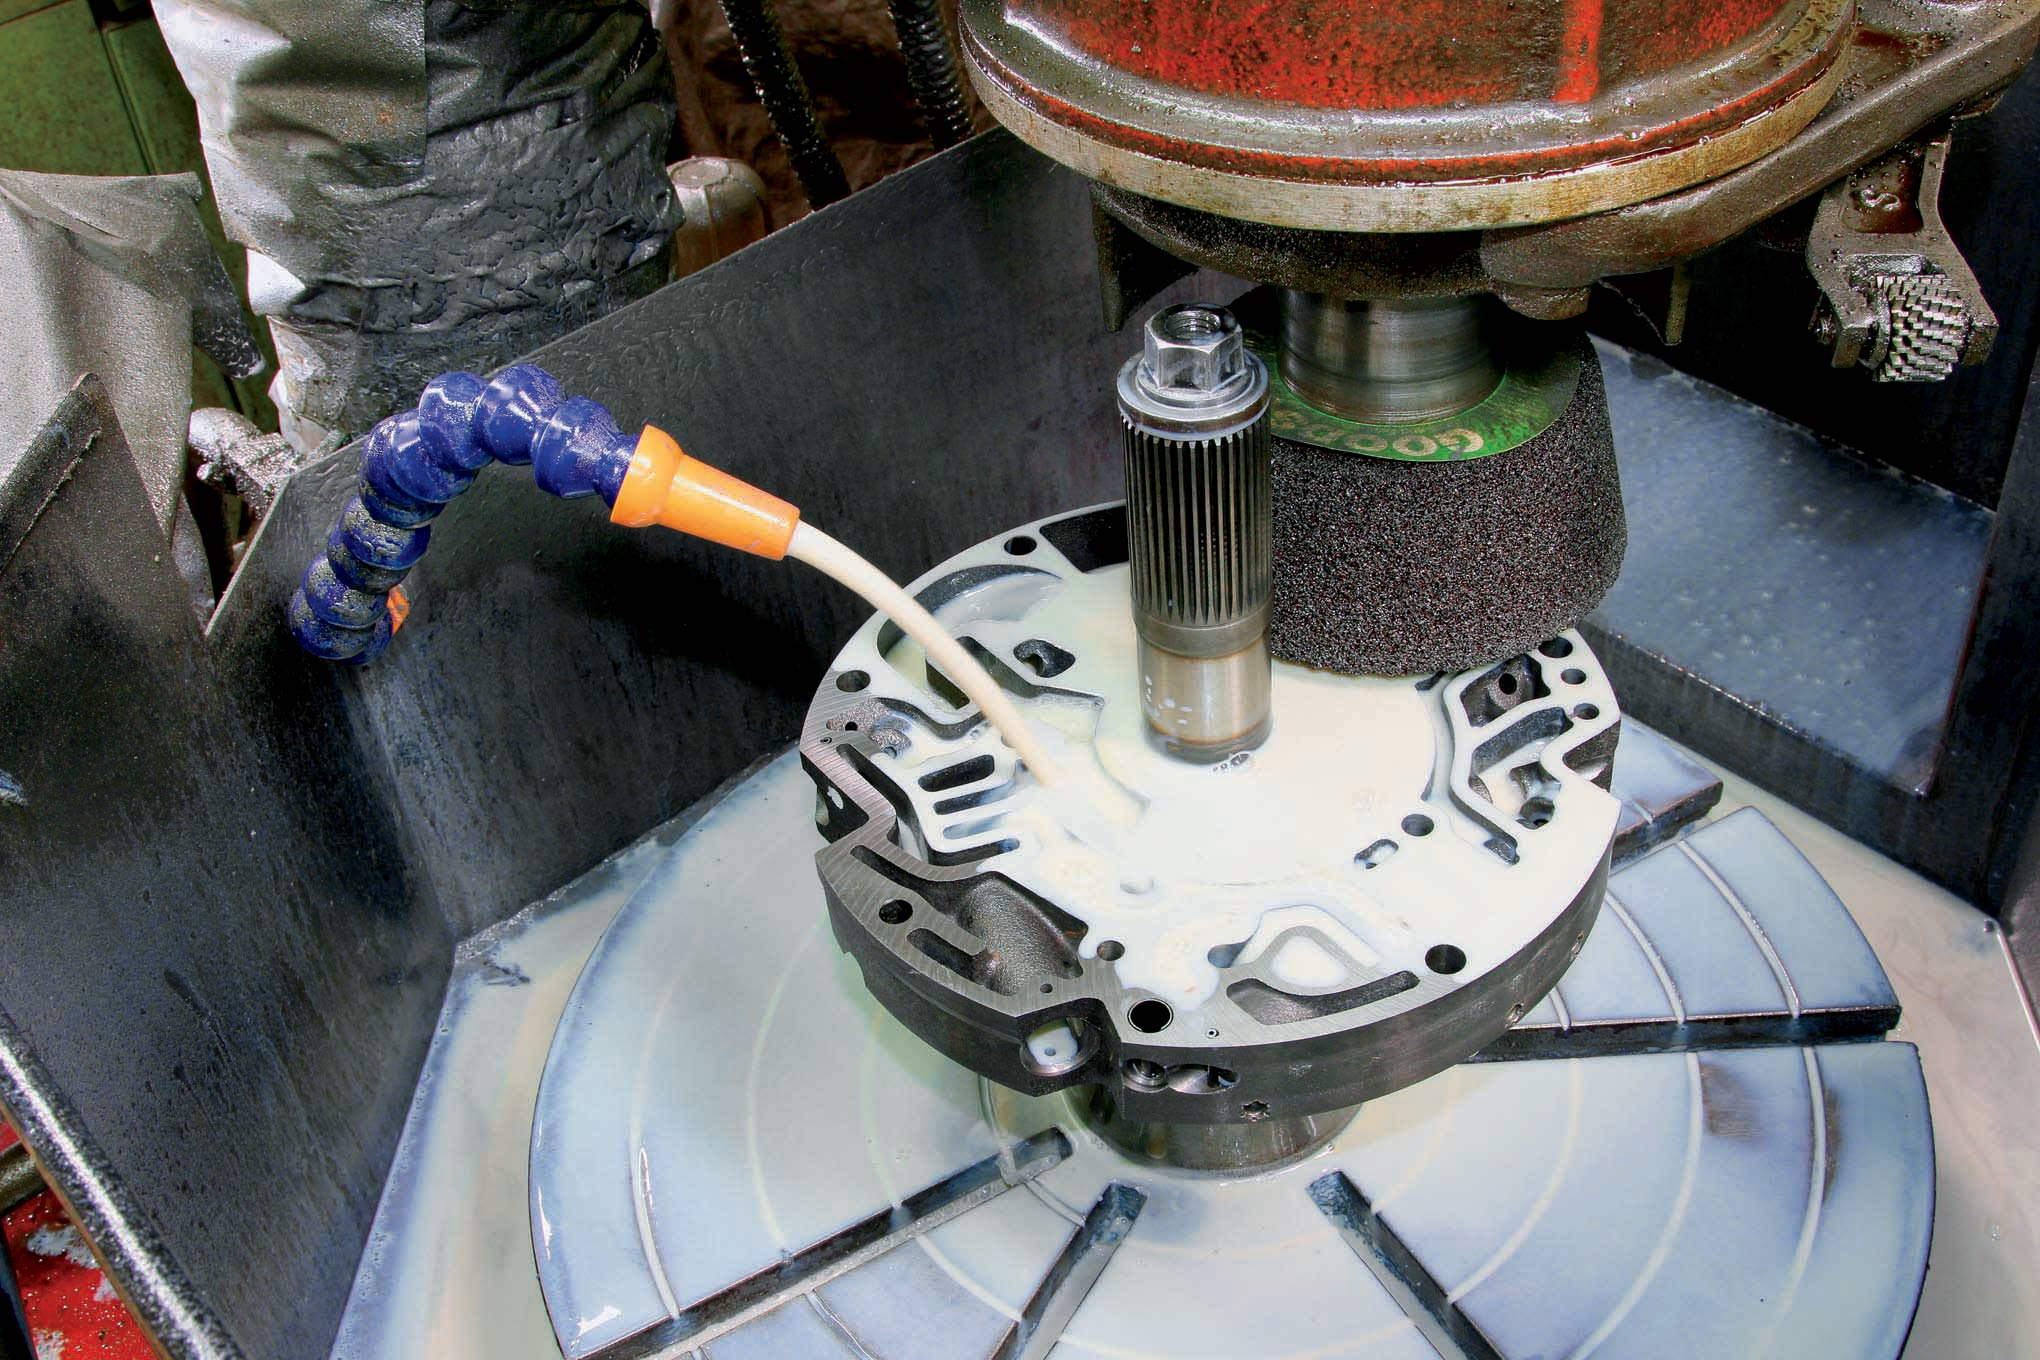 To ensure true and flat sealing surface, prevent cross leaks between pump stator and pump body, and eliminate cavitation of the pump gear set and/or torque converter, Hughes machines the mating surfaces.